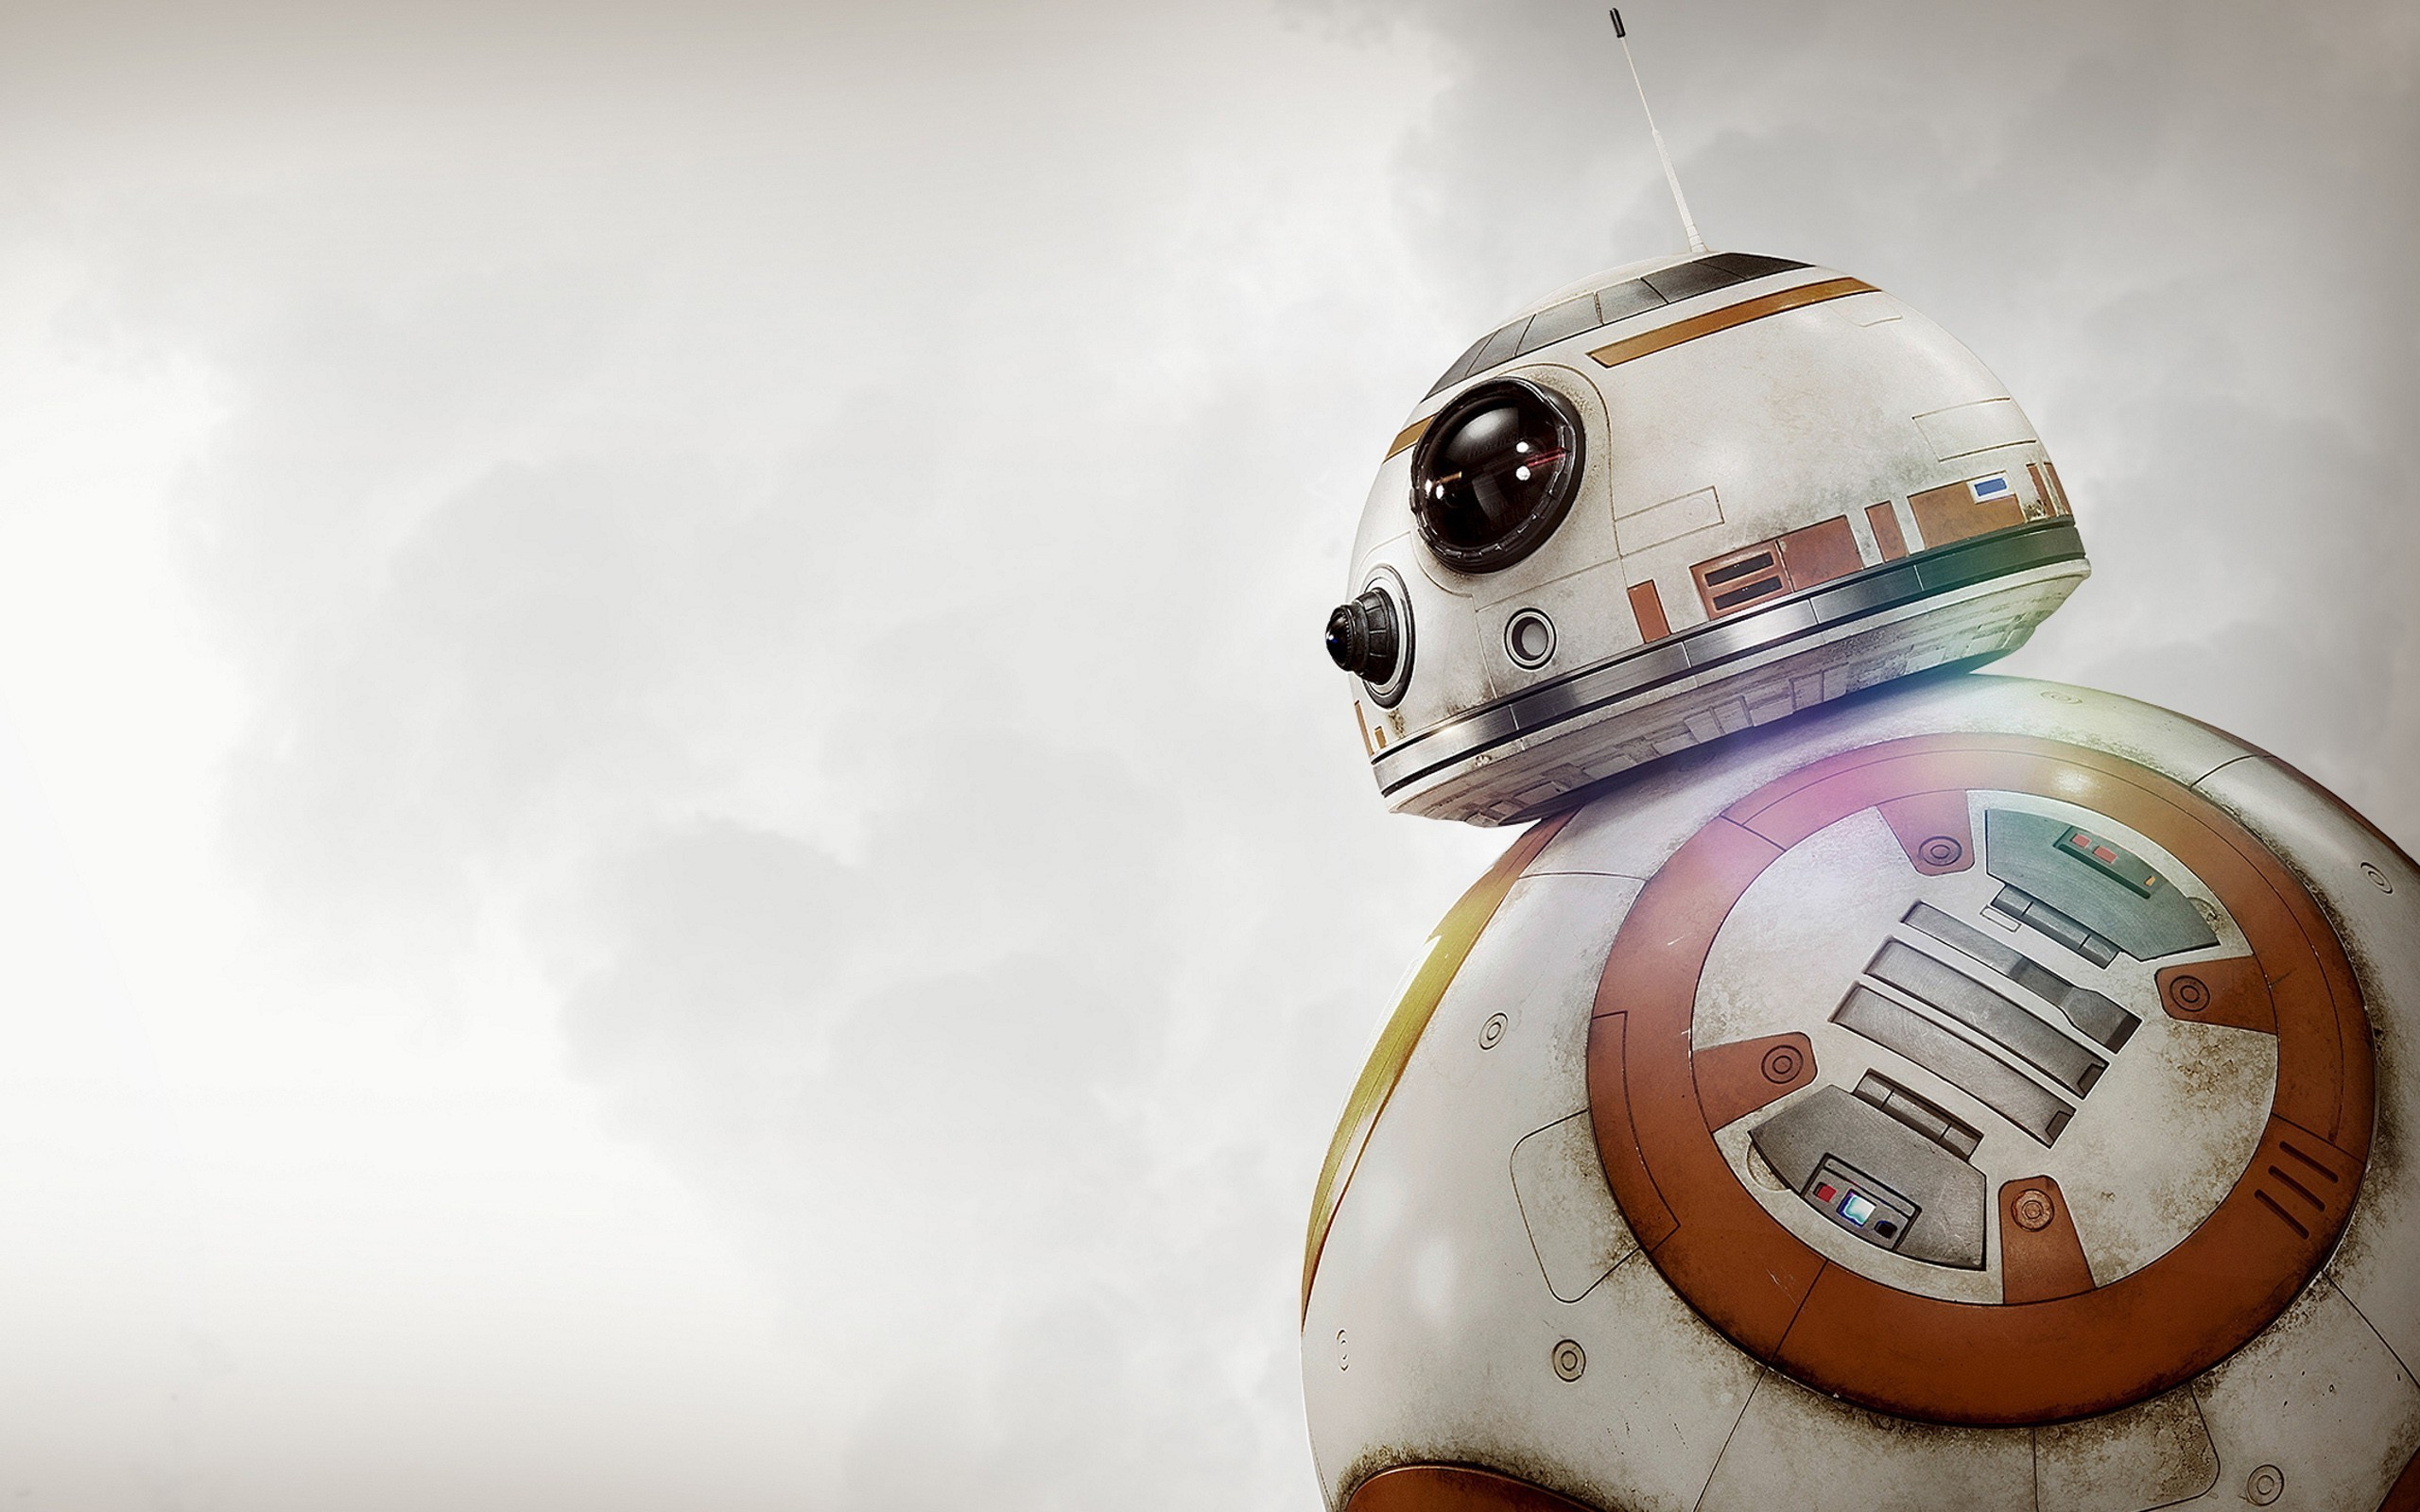 BB 8, Star Wars: The Force Awakens, Robot, Science Fiction, Star Wars  Wallpapers HD / Desktop and Mobile Backgrounds